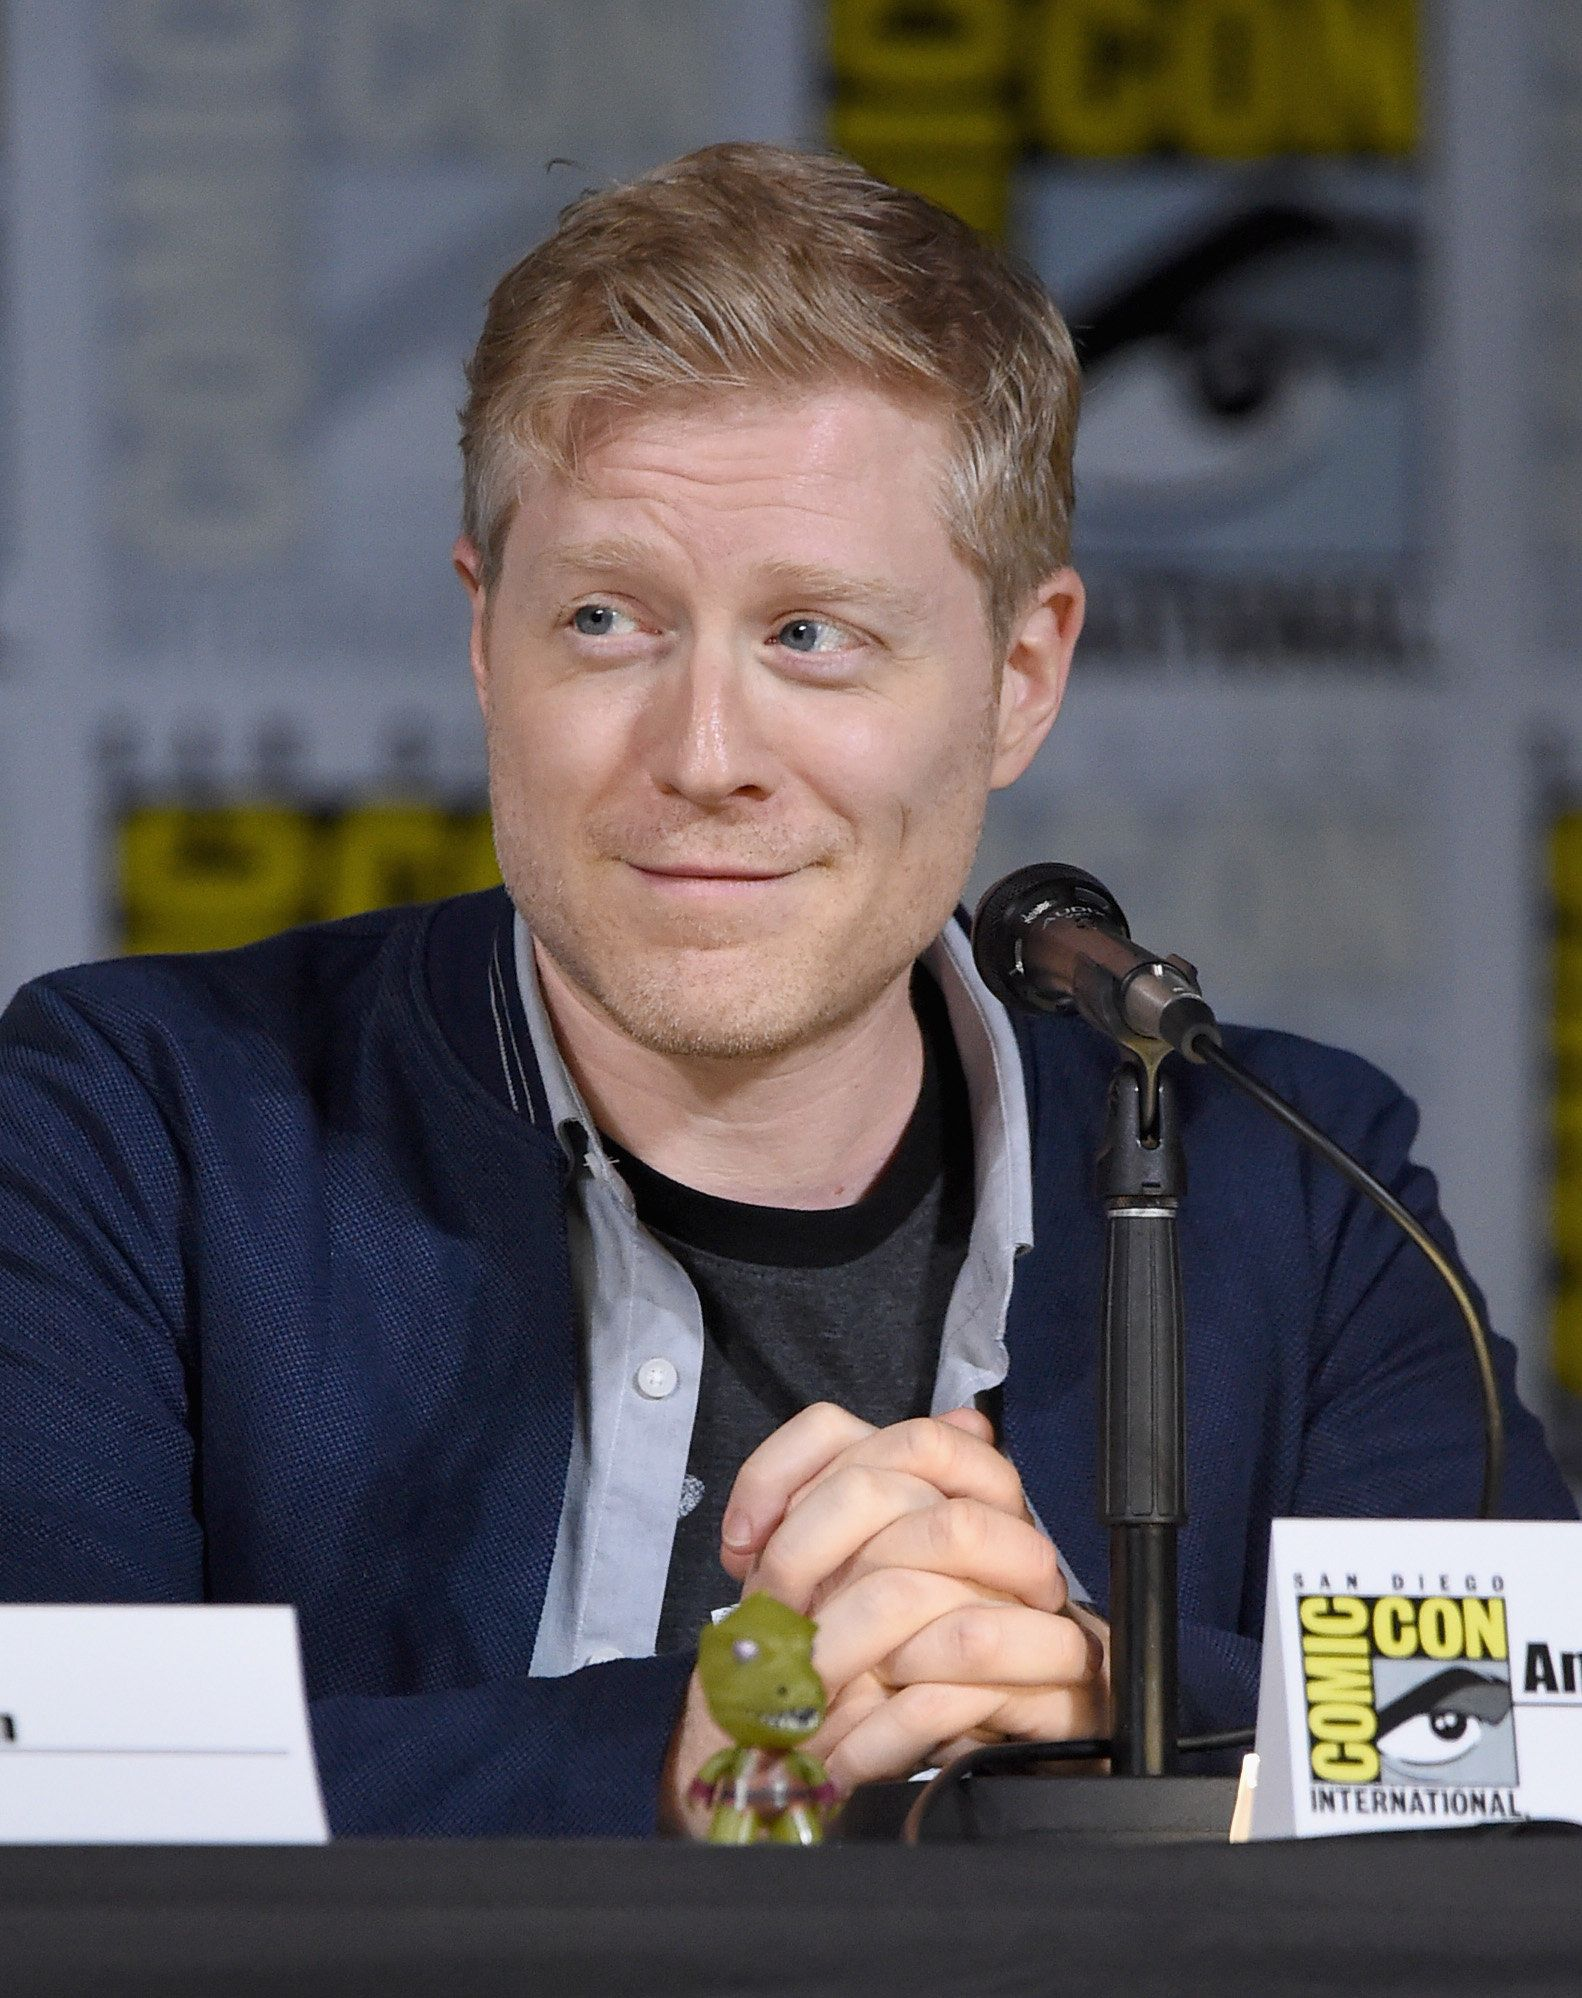 Actor Anthony Rapp at the San Diego Comic-Con on